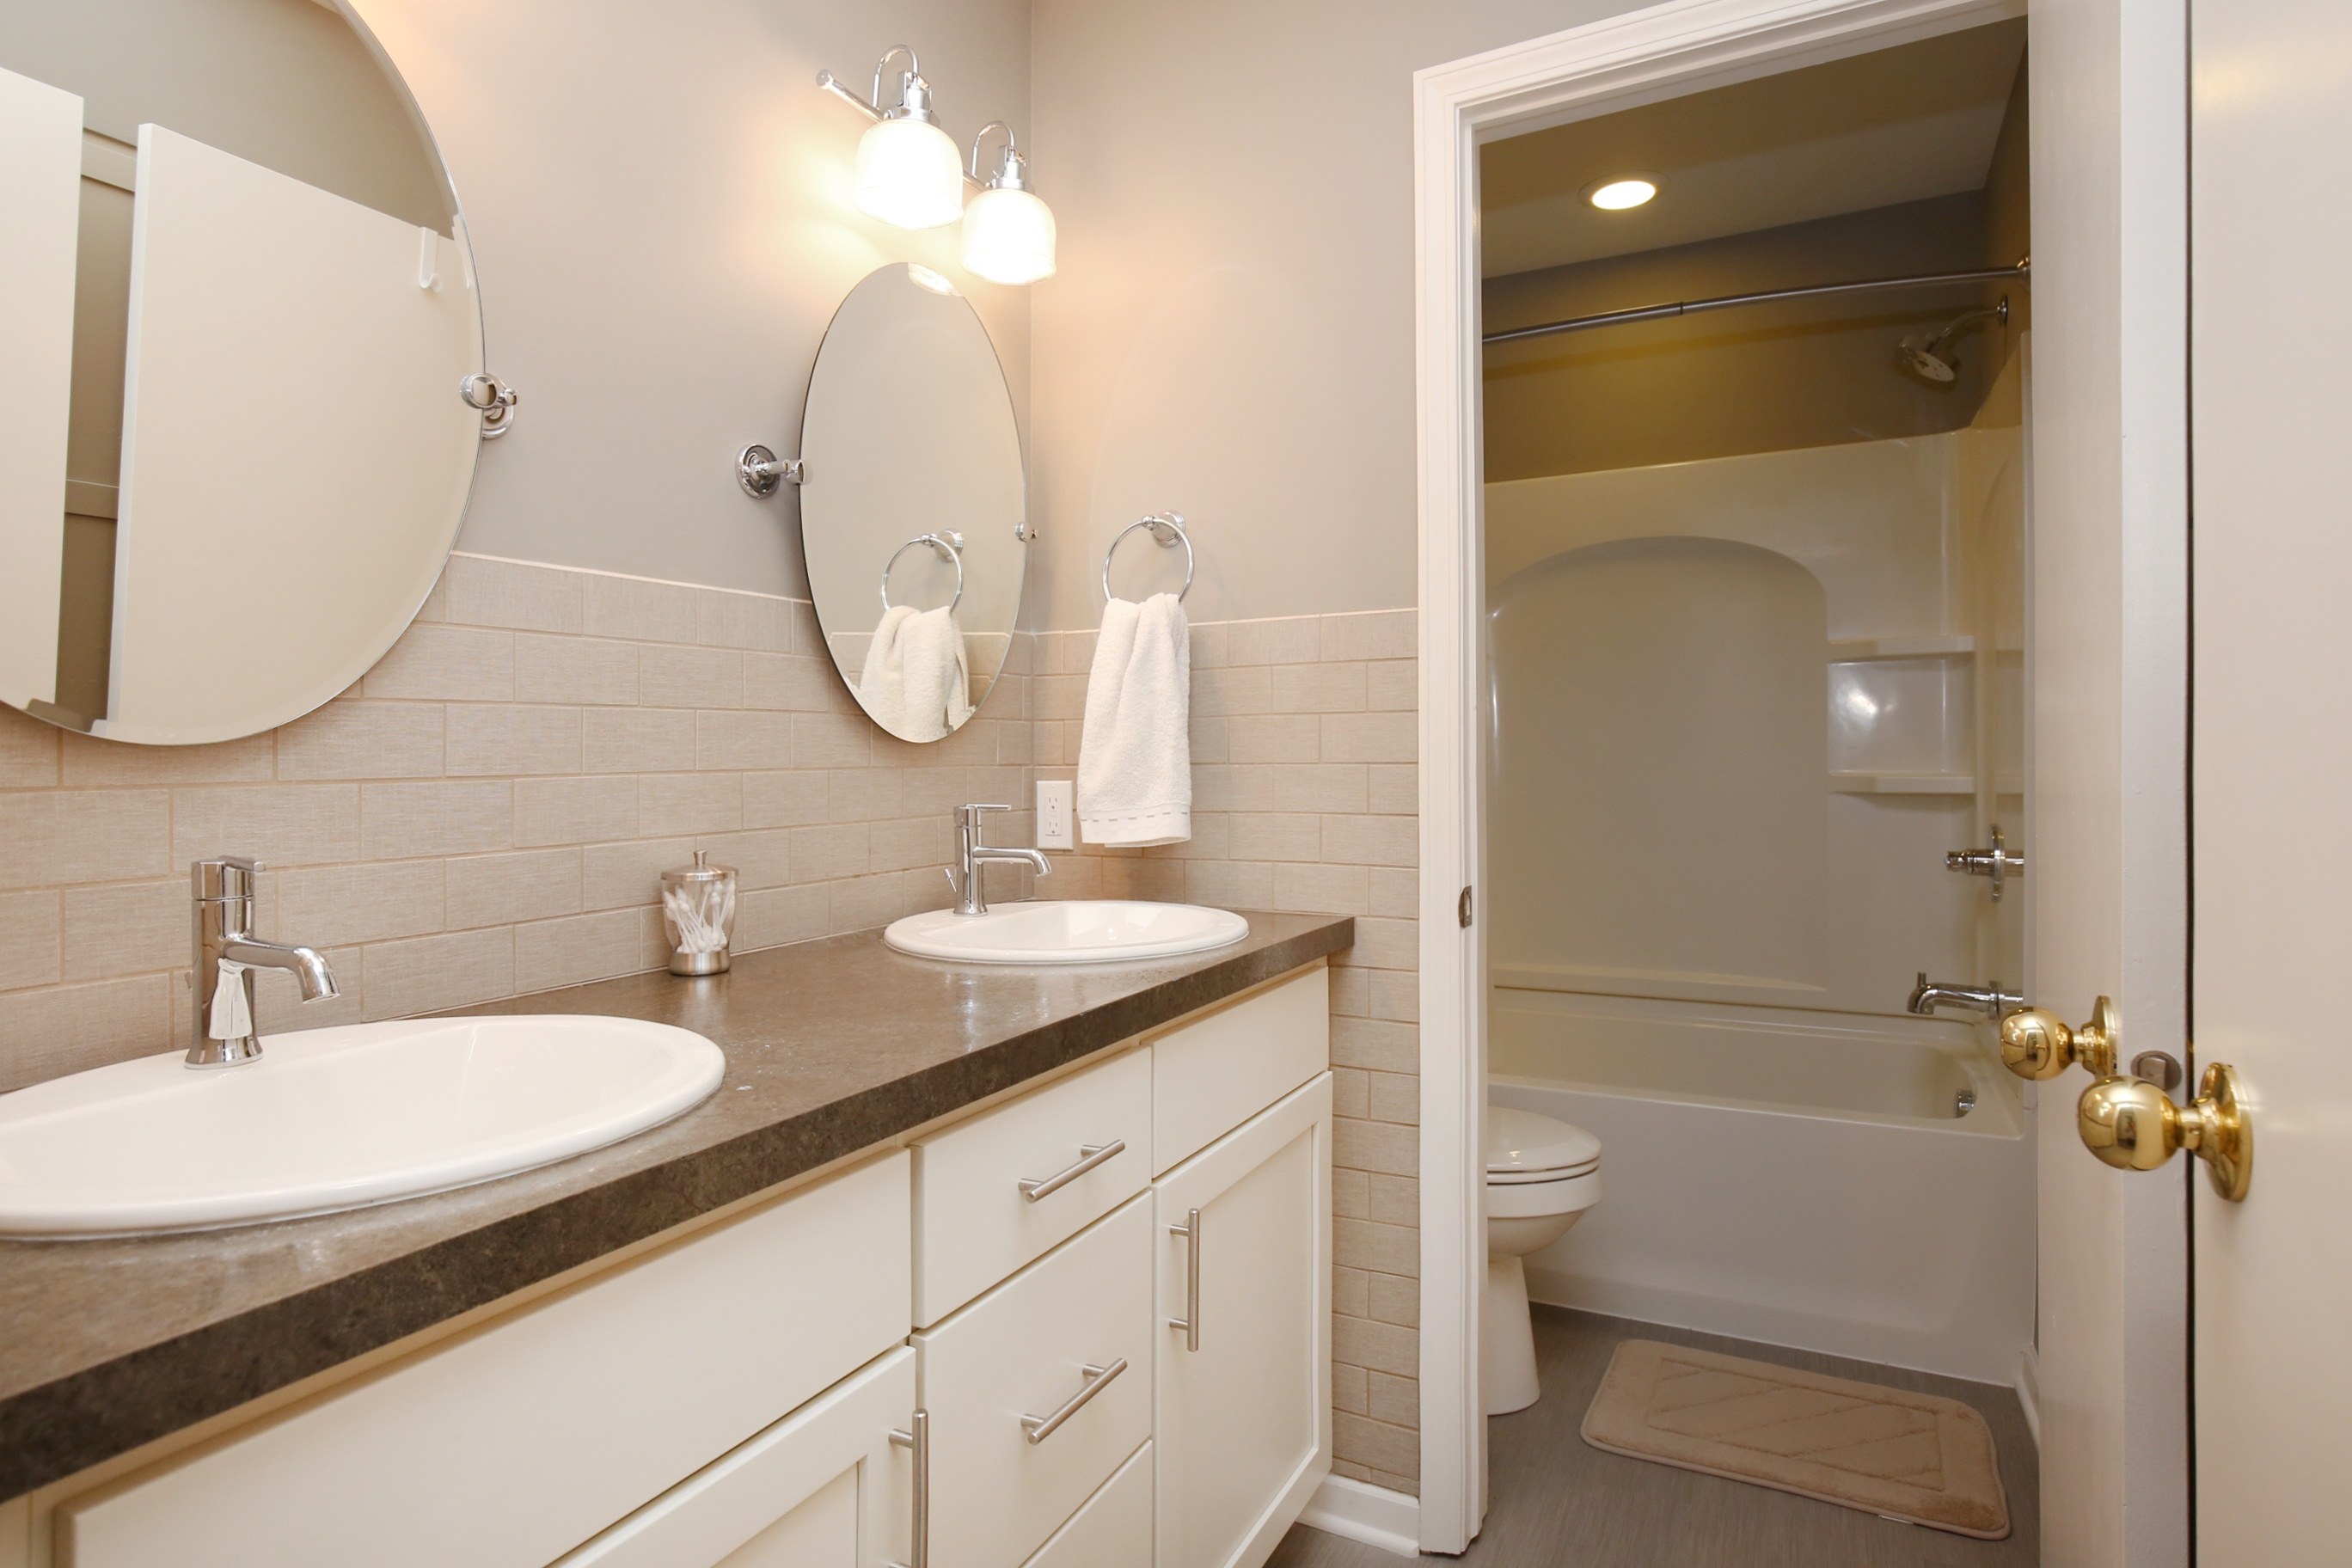 ... cabinets to house all of their towels toiletries and laundry h&ers. You can see that they were designed to match the bathroom vanity as well. & Got Stuff? Try floor to ceiling cabinets!